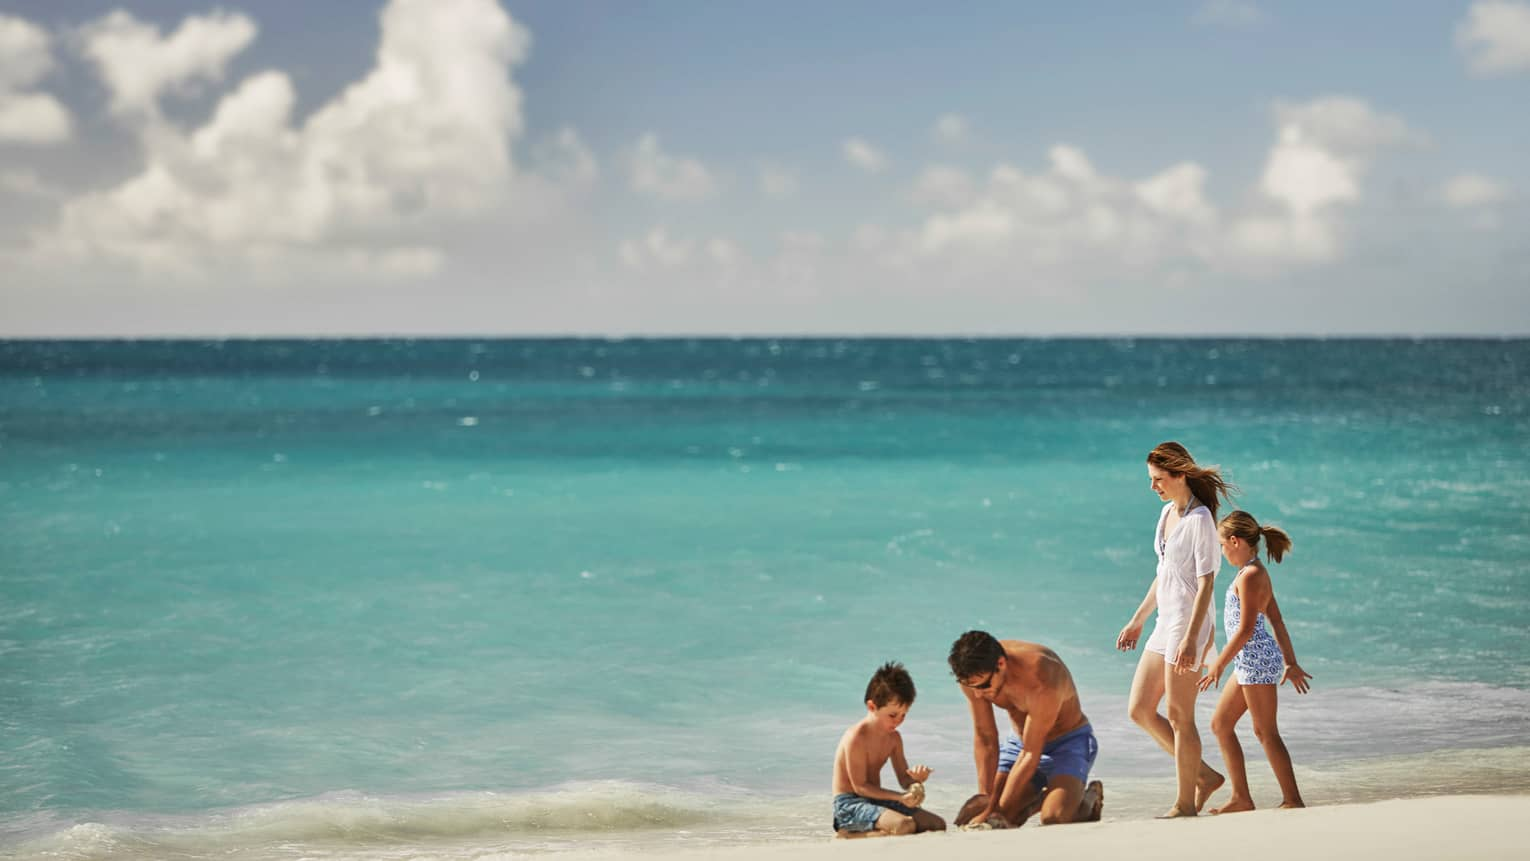 Man and little boy dig in sand while woman and young girl stand beside them on sunny sand beach by ocean